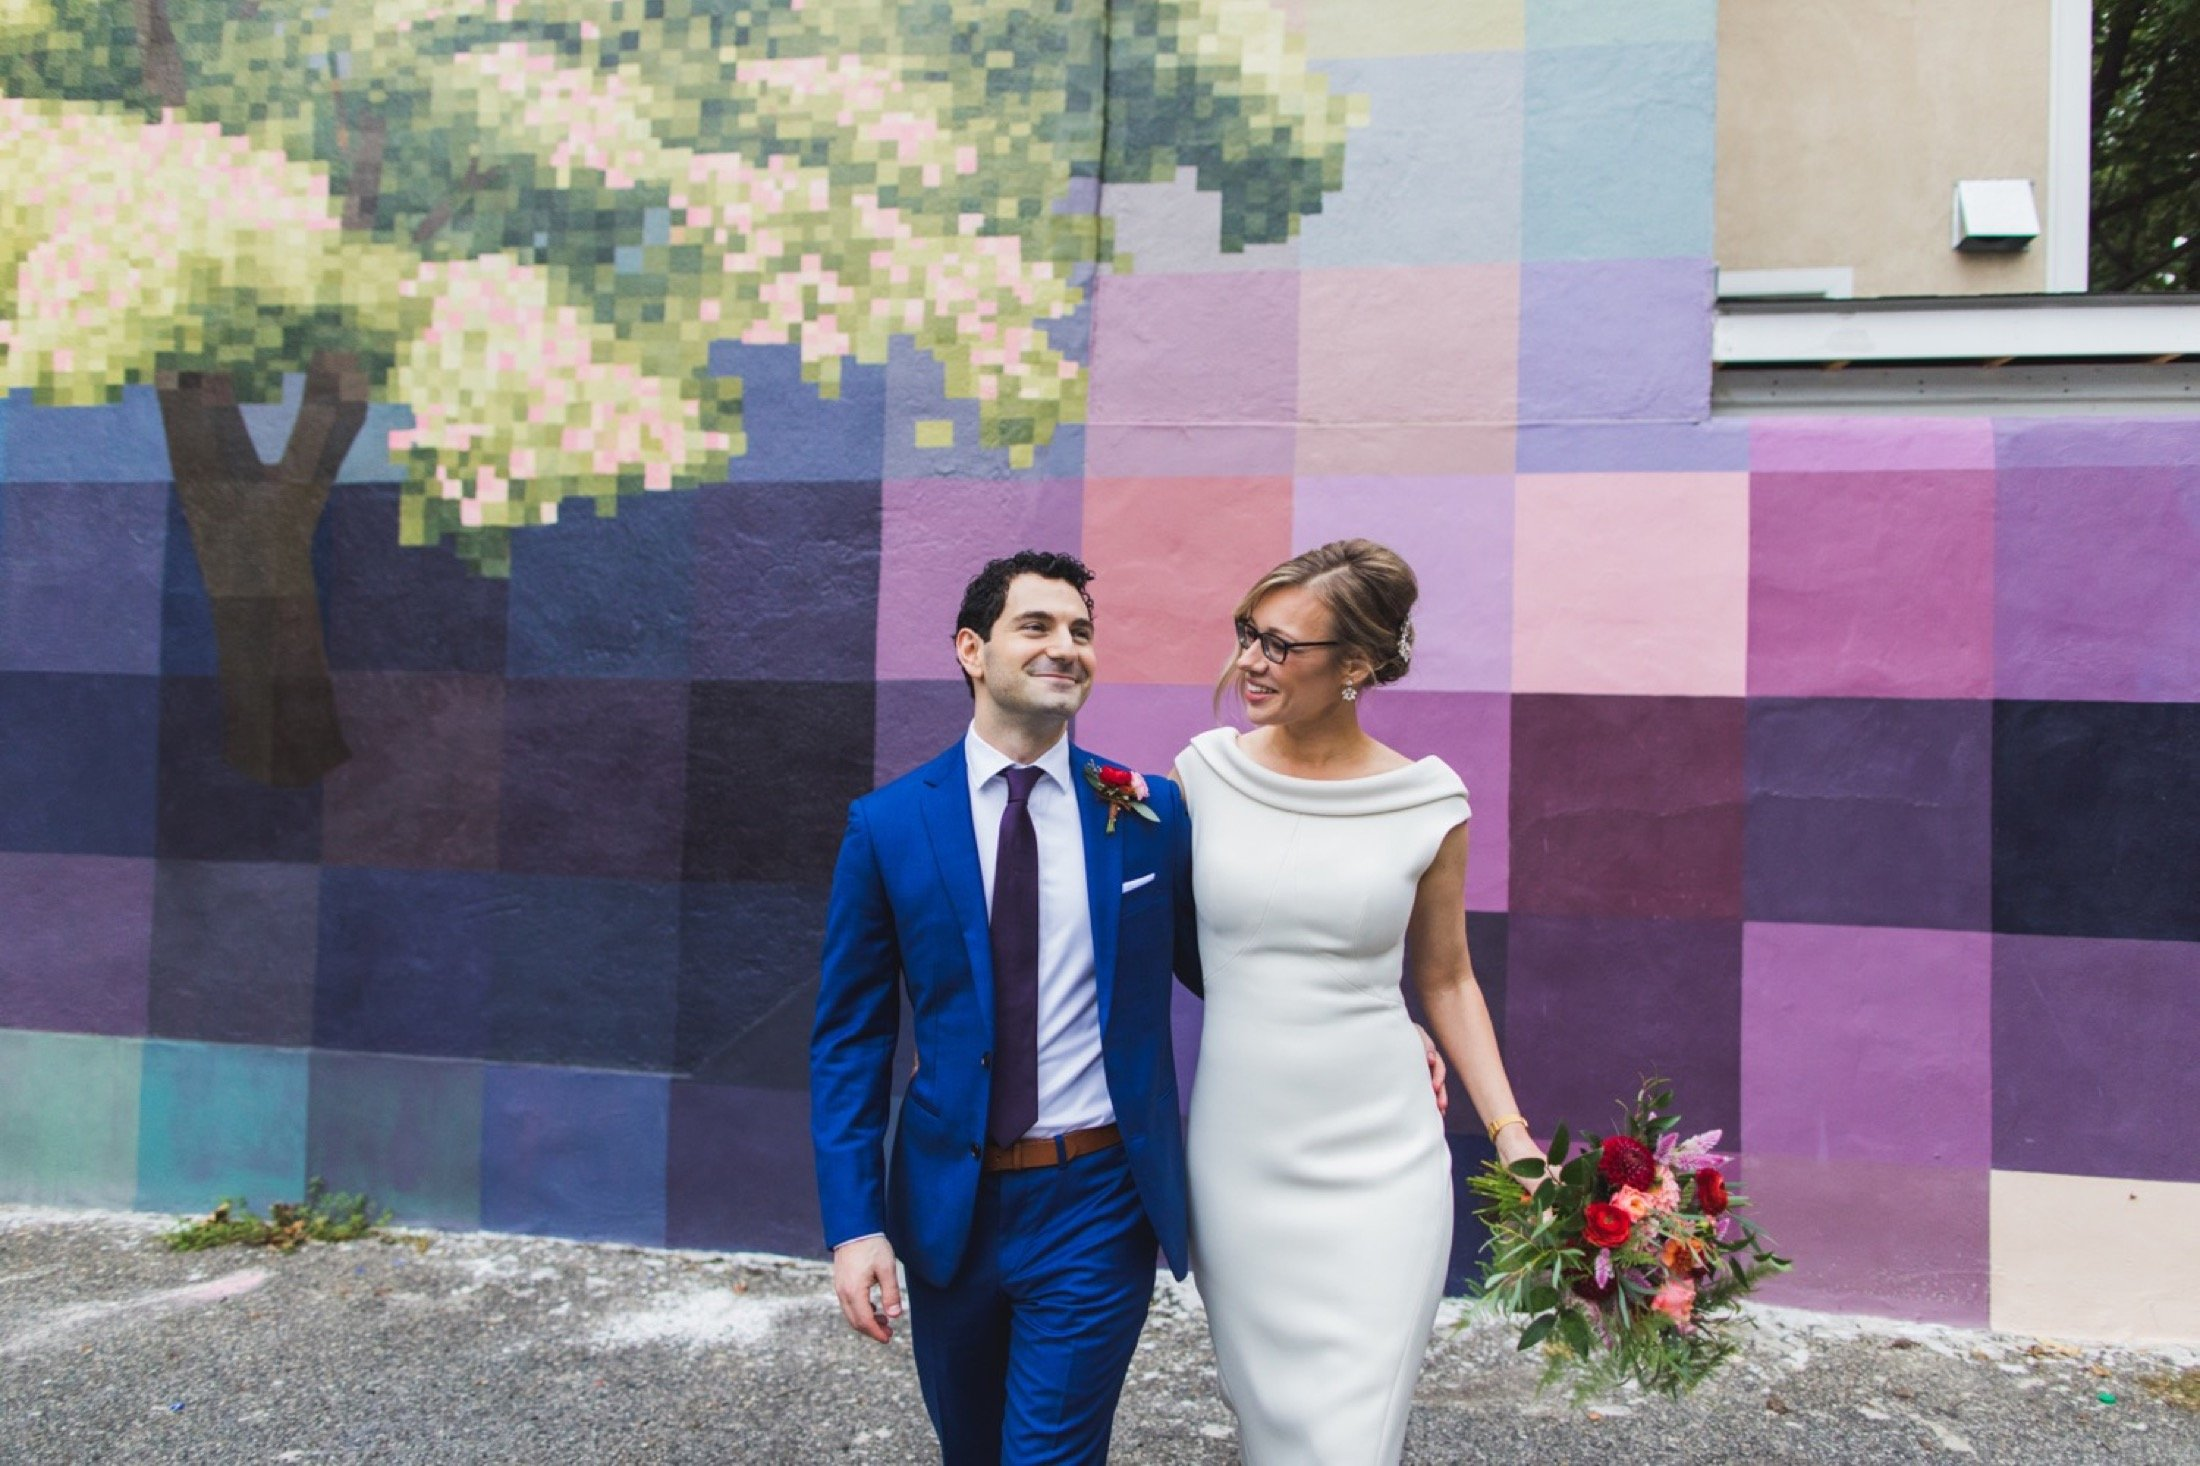 1315 Pine Street, Spring, mural, wedding, Philadelphia, photography